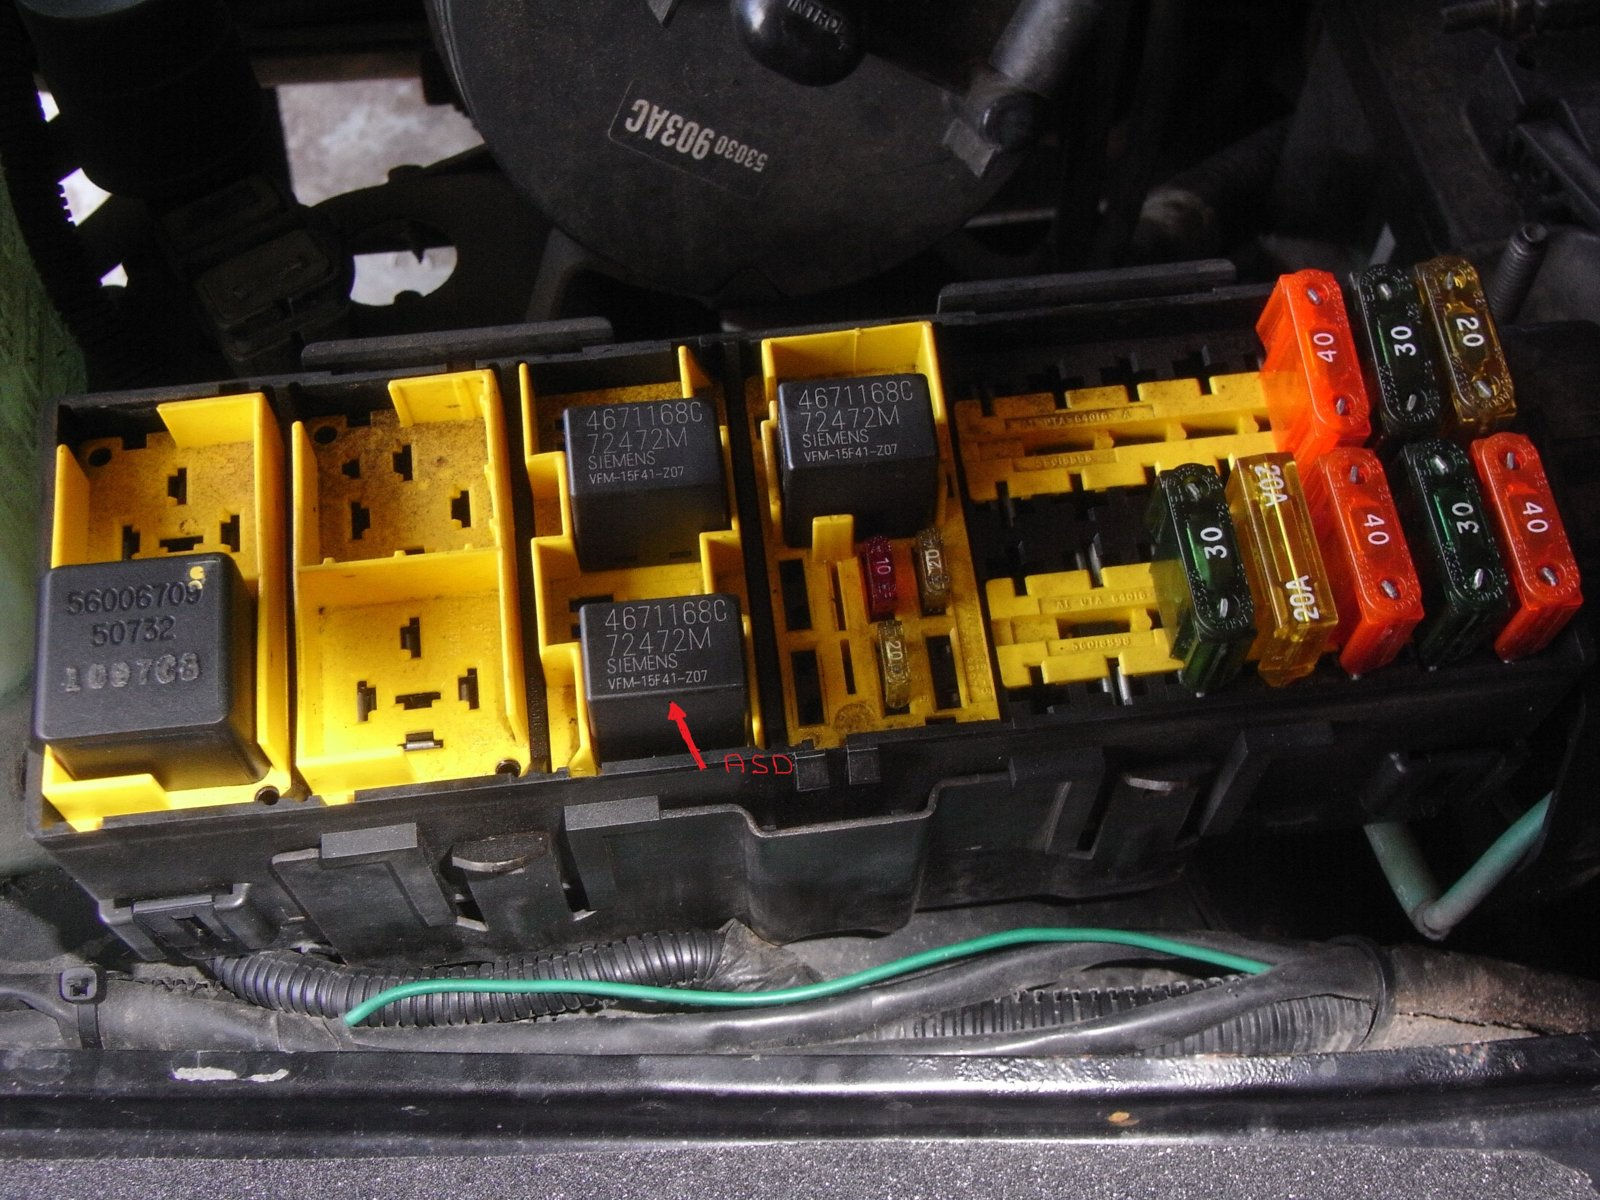 2007 Jeep Wrangler Fuse Box Wiring Library Clicking Basic Guide Diagram U2022 Liberty Panel